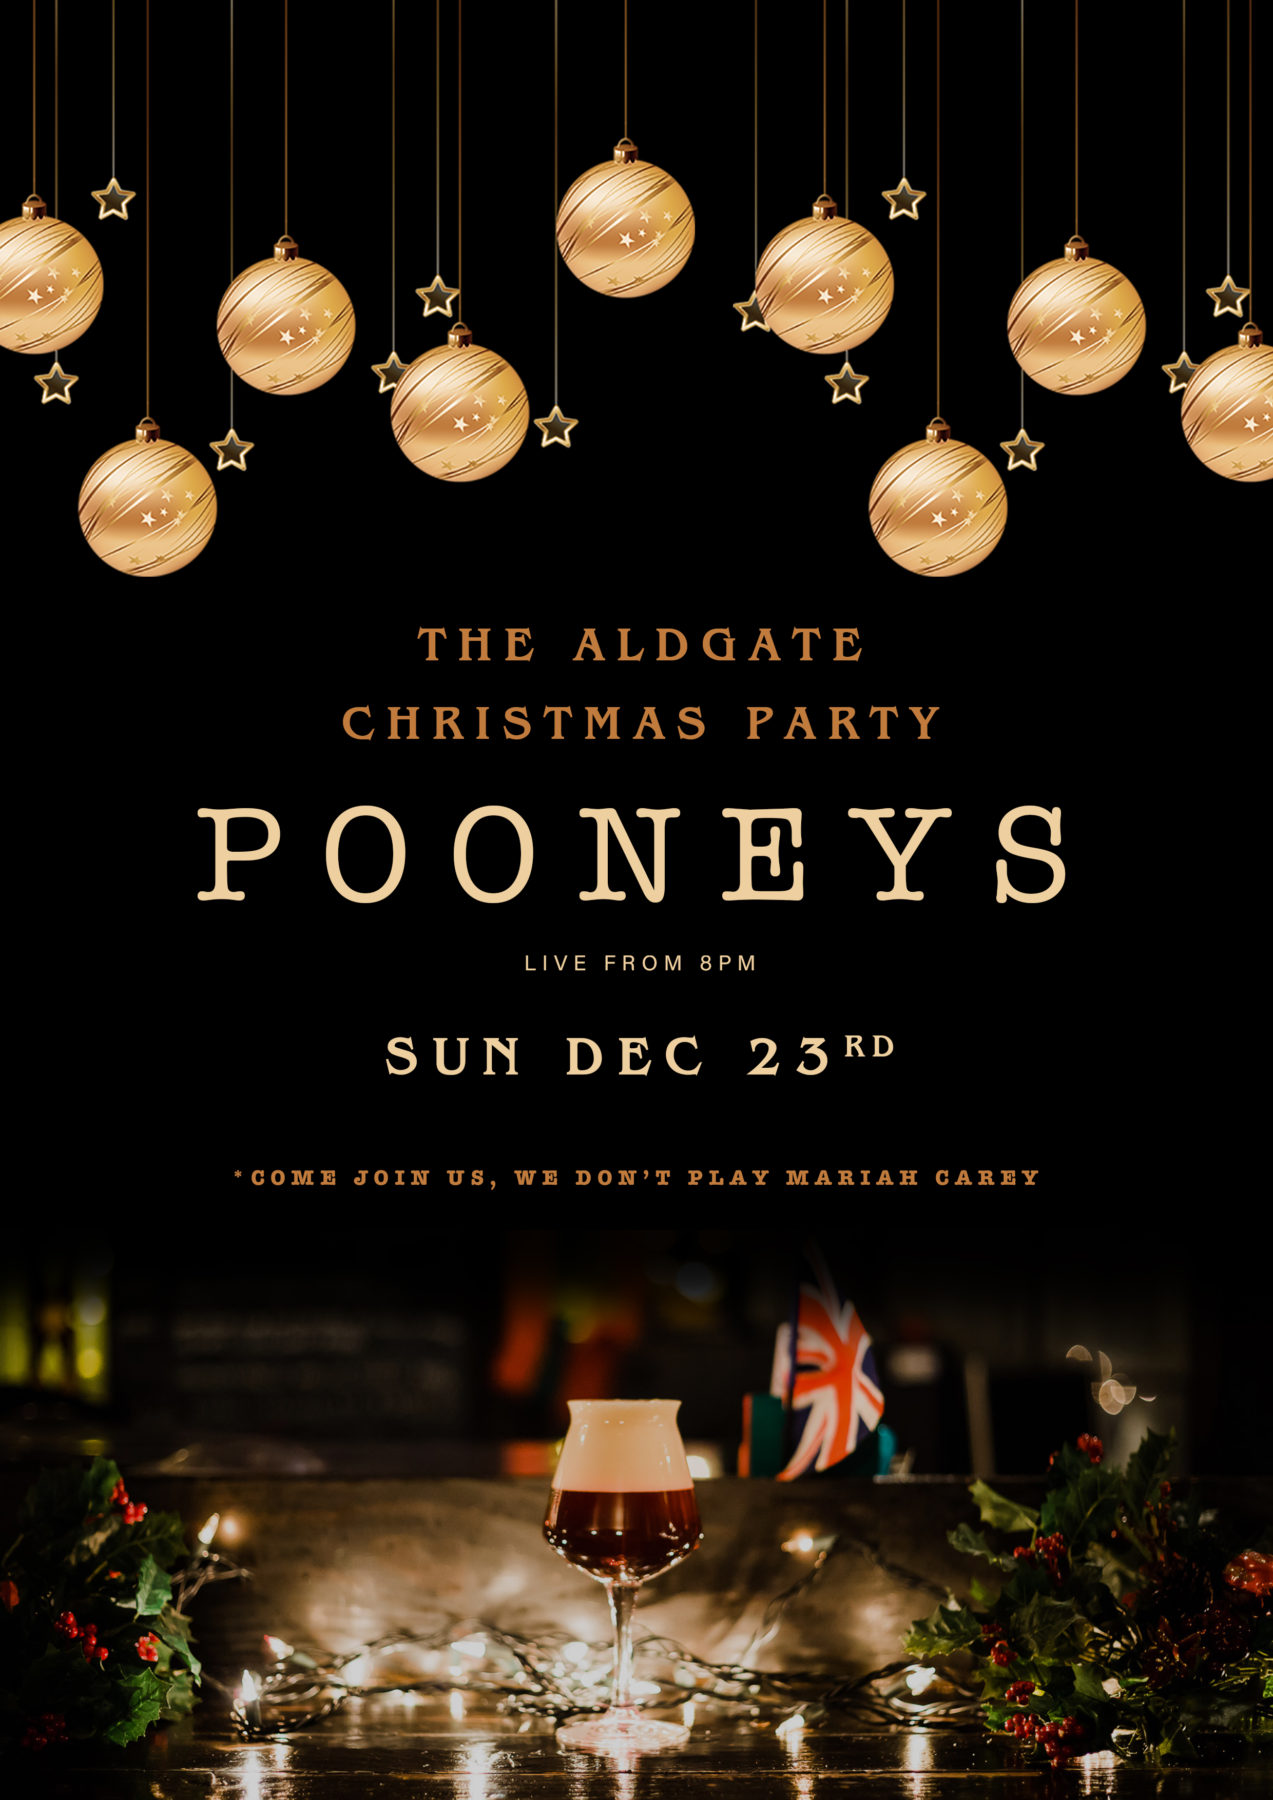 The Aldgate Christmas Party